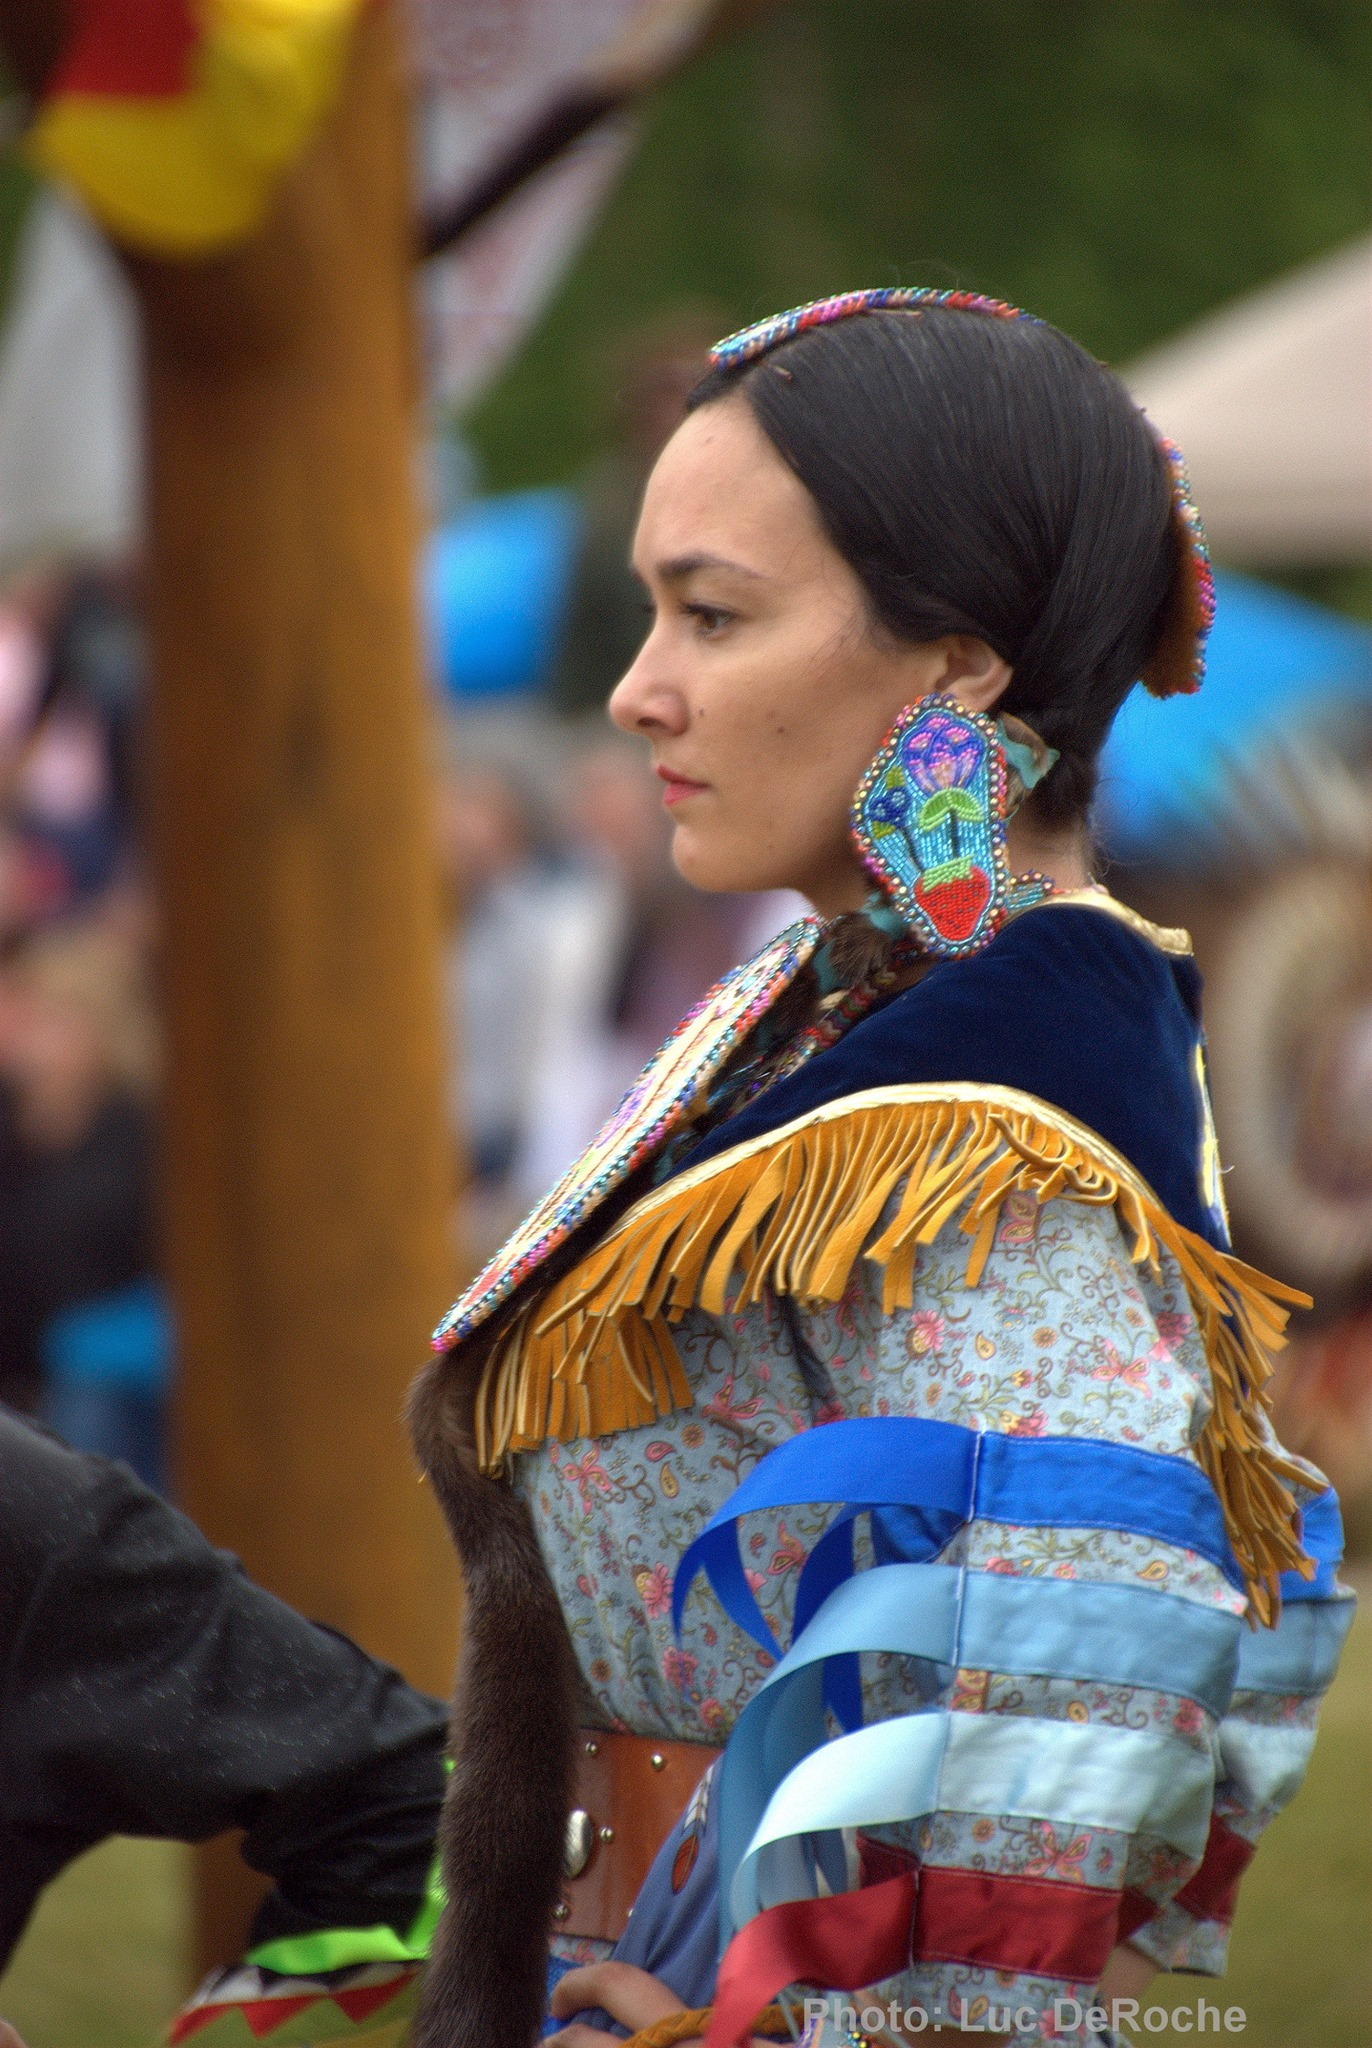 Pabineau First Nation's Pow wow photo submitted by Luc DeRoche